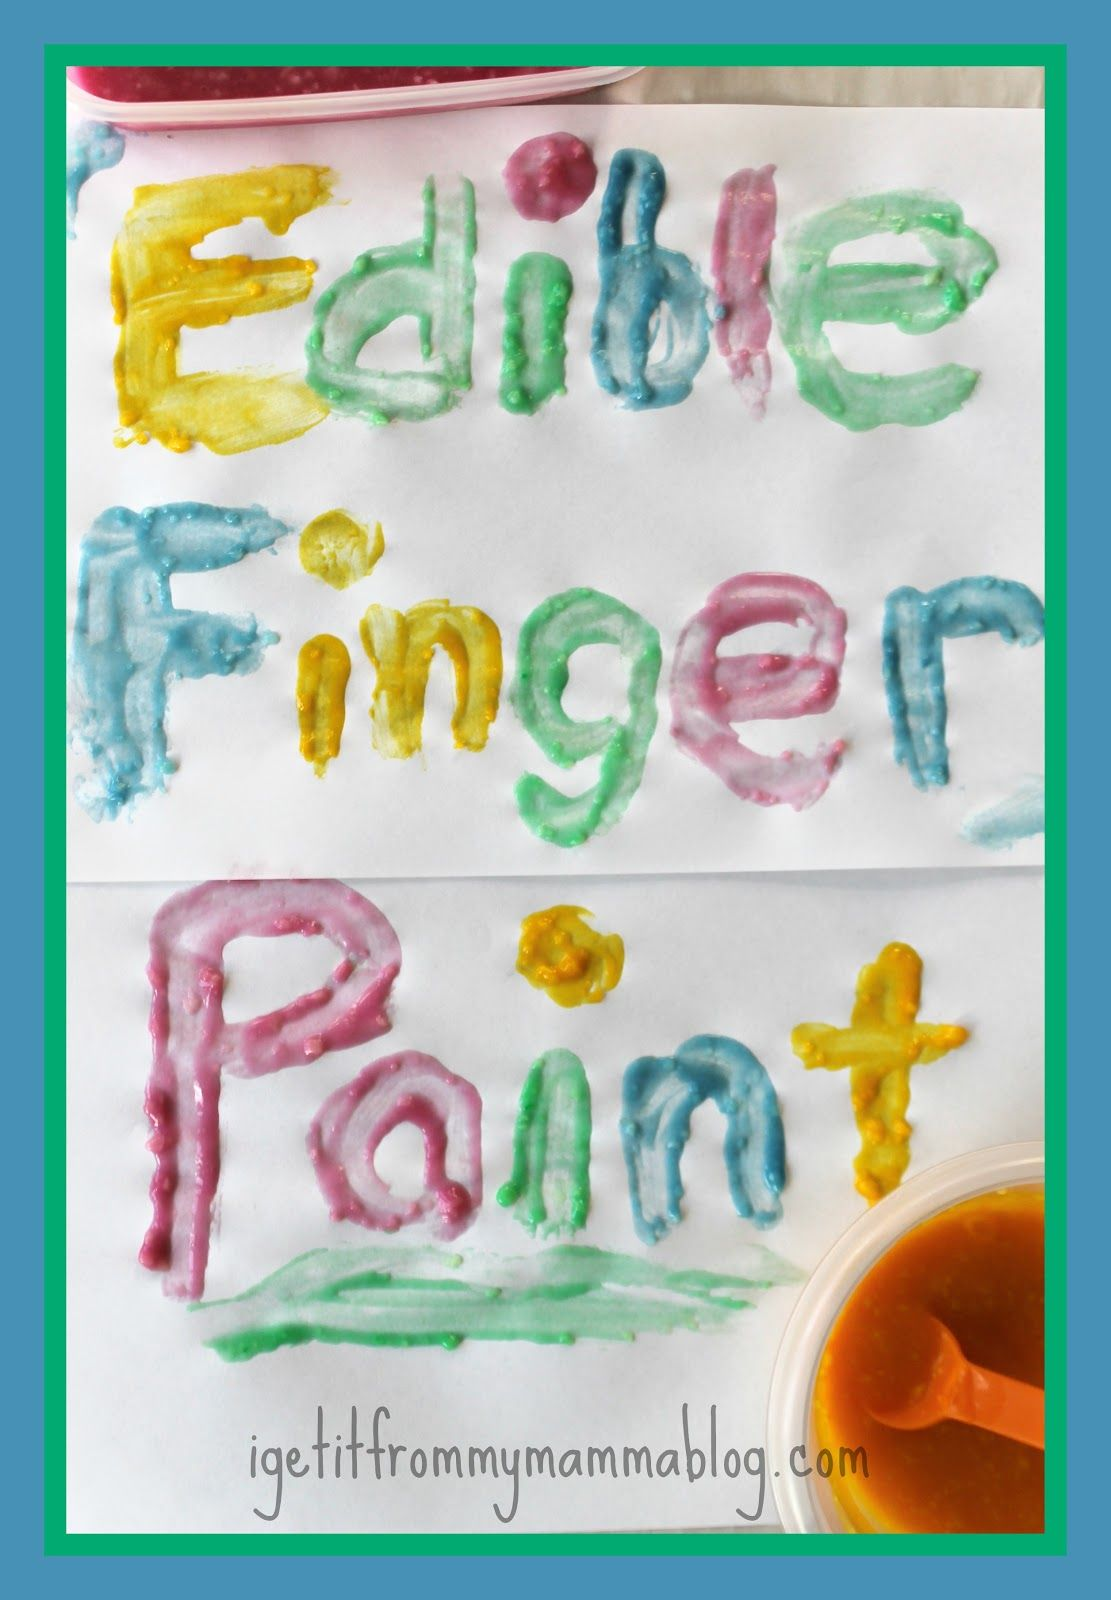 Baby safe paint for crafts - Edible Finger Paint Ideal For Babies And Young Toddlers Who Put Everything In Their Mouths